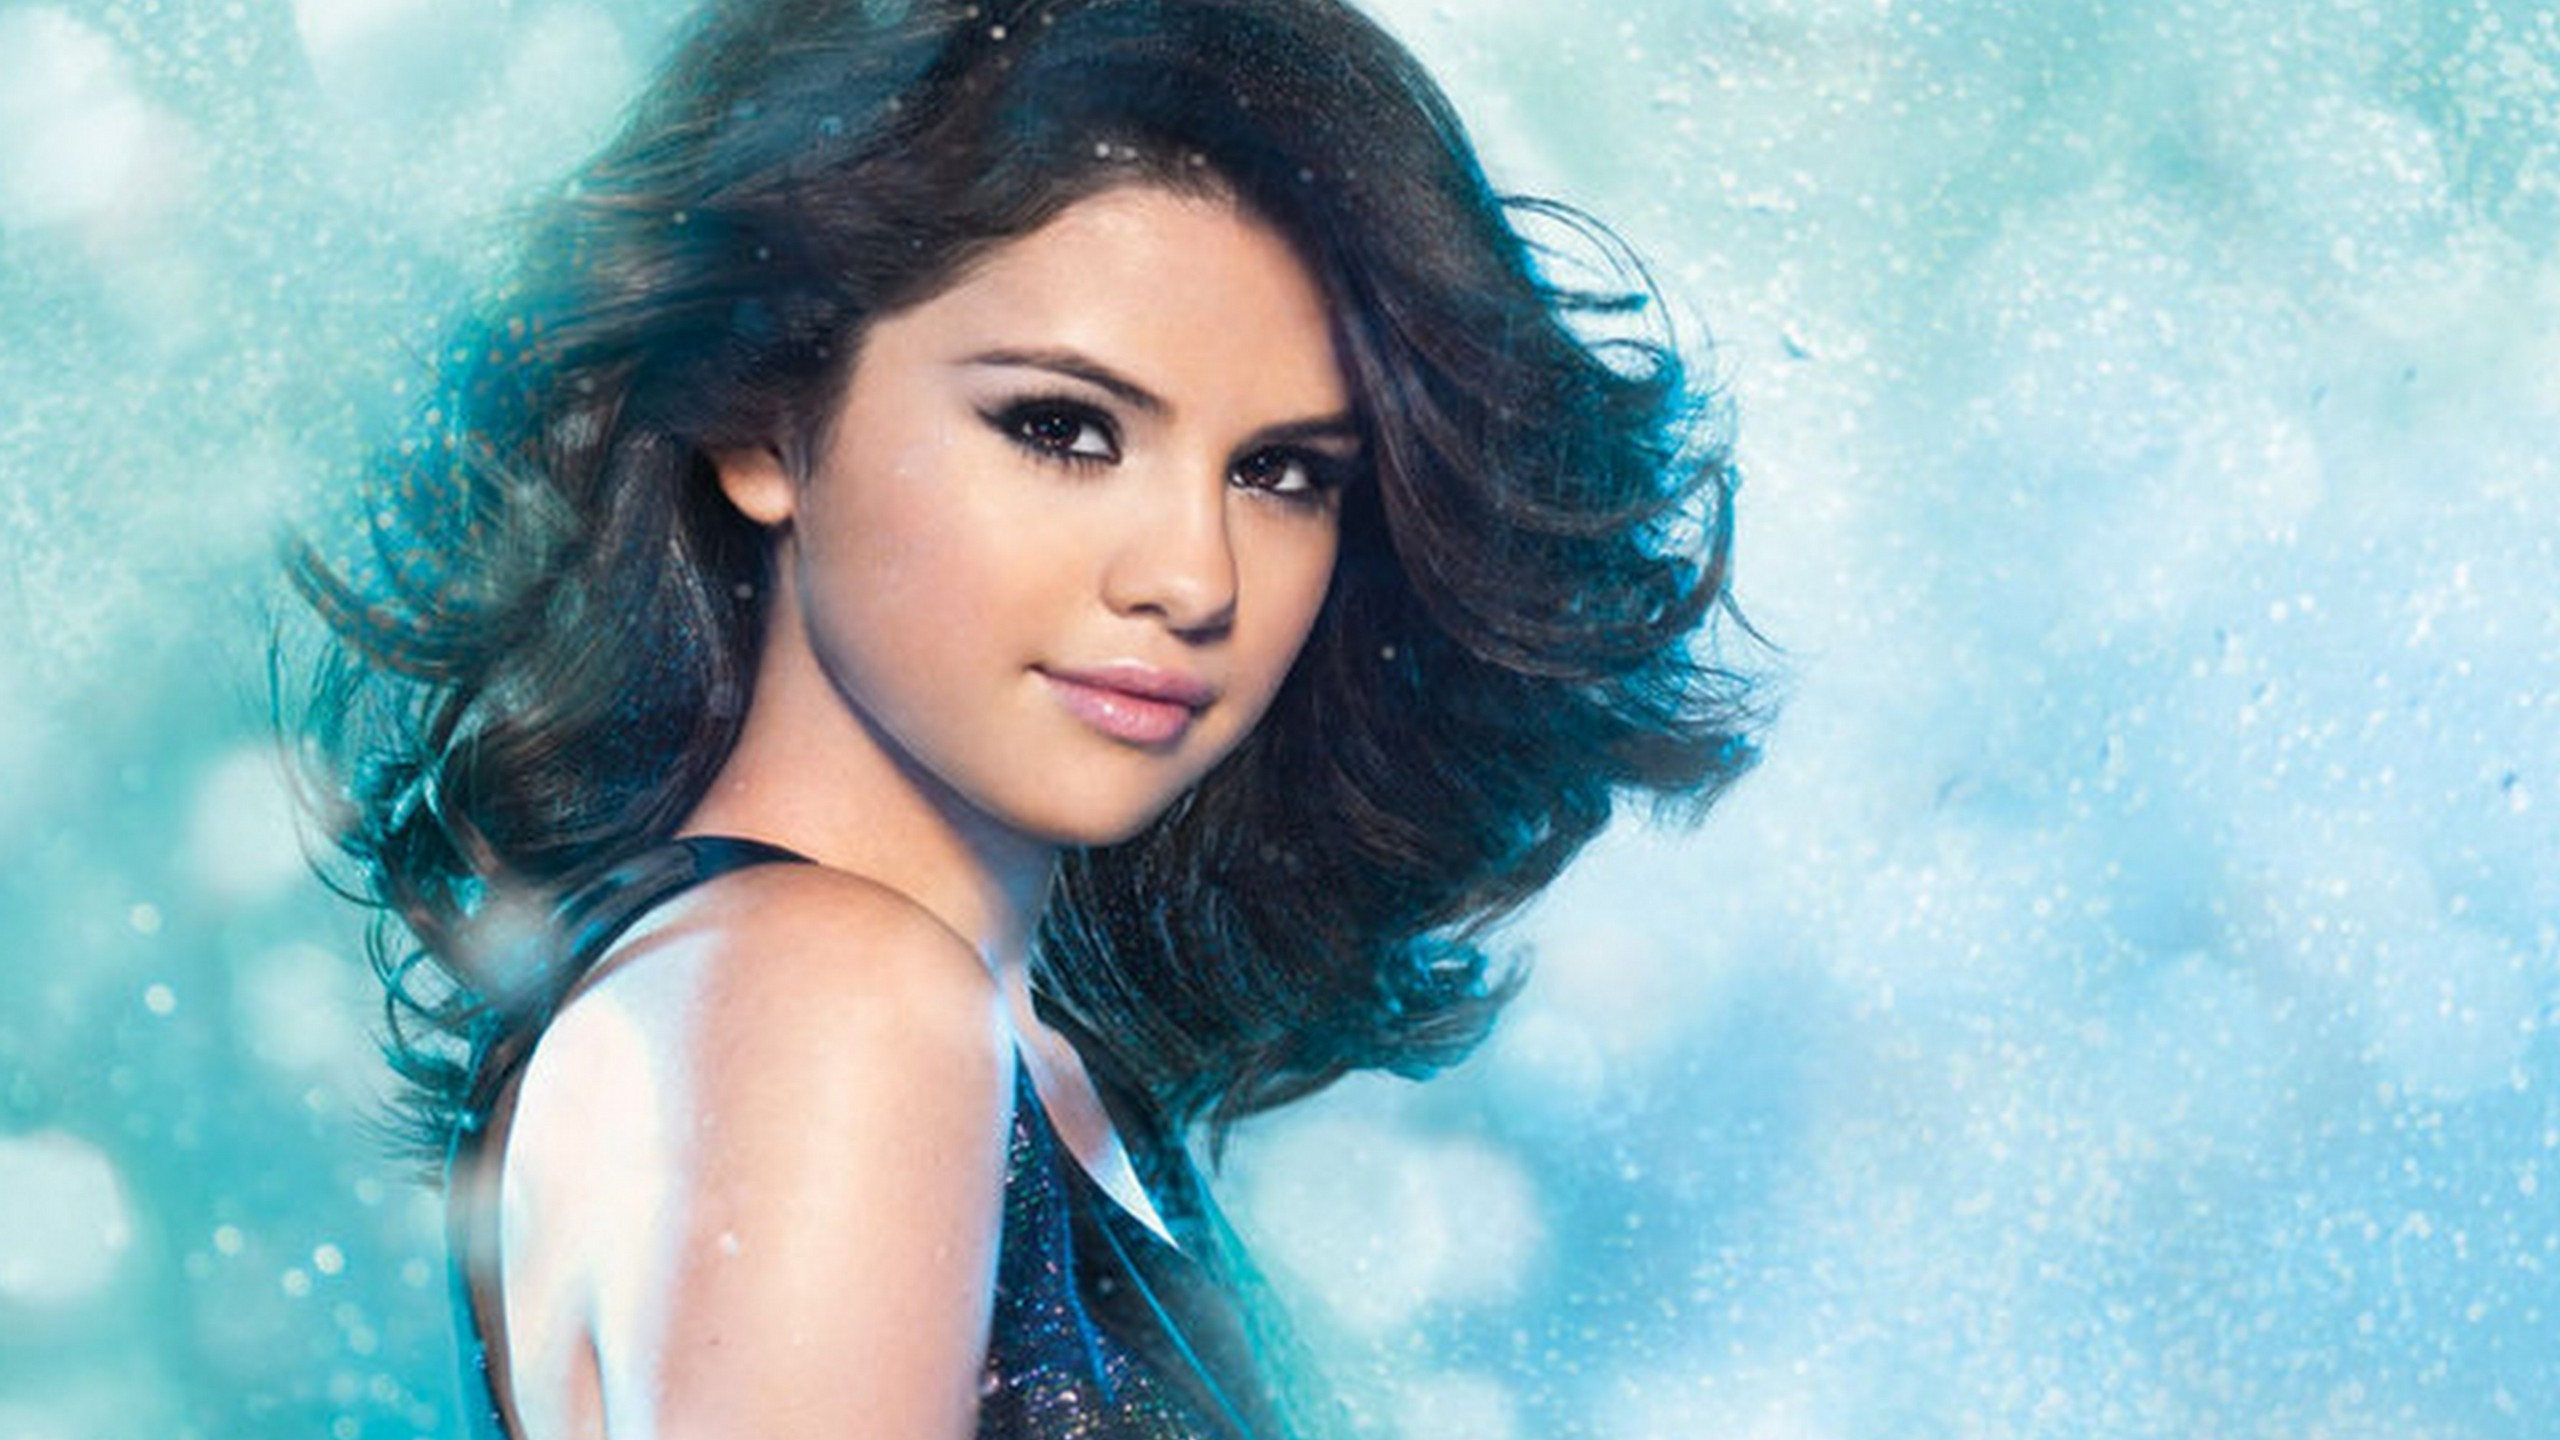 New Selena Gomez High Definition Wallpapers